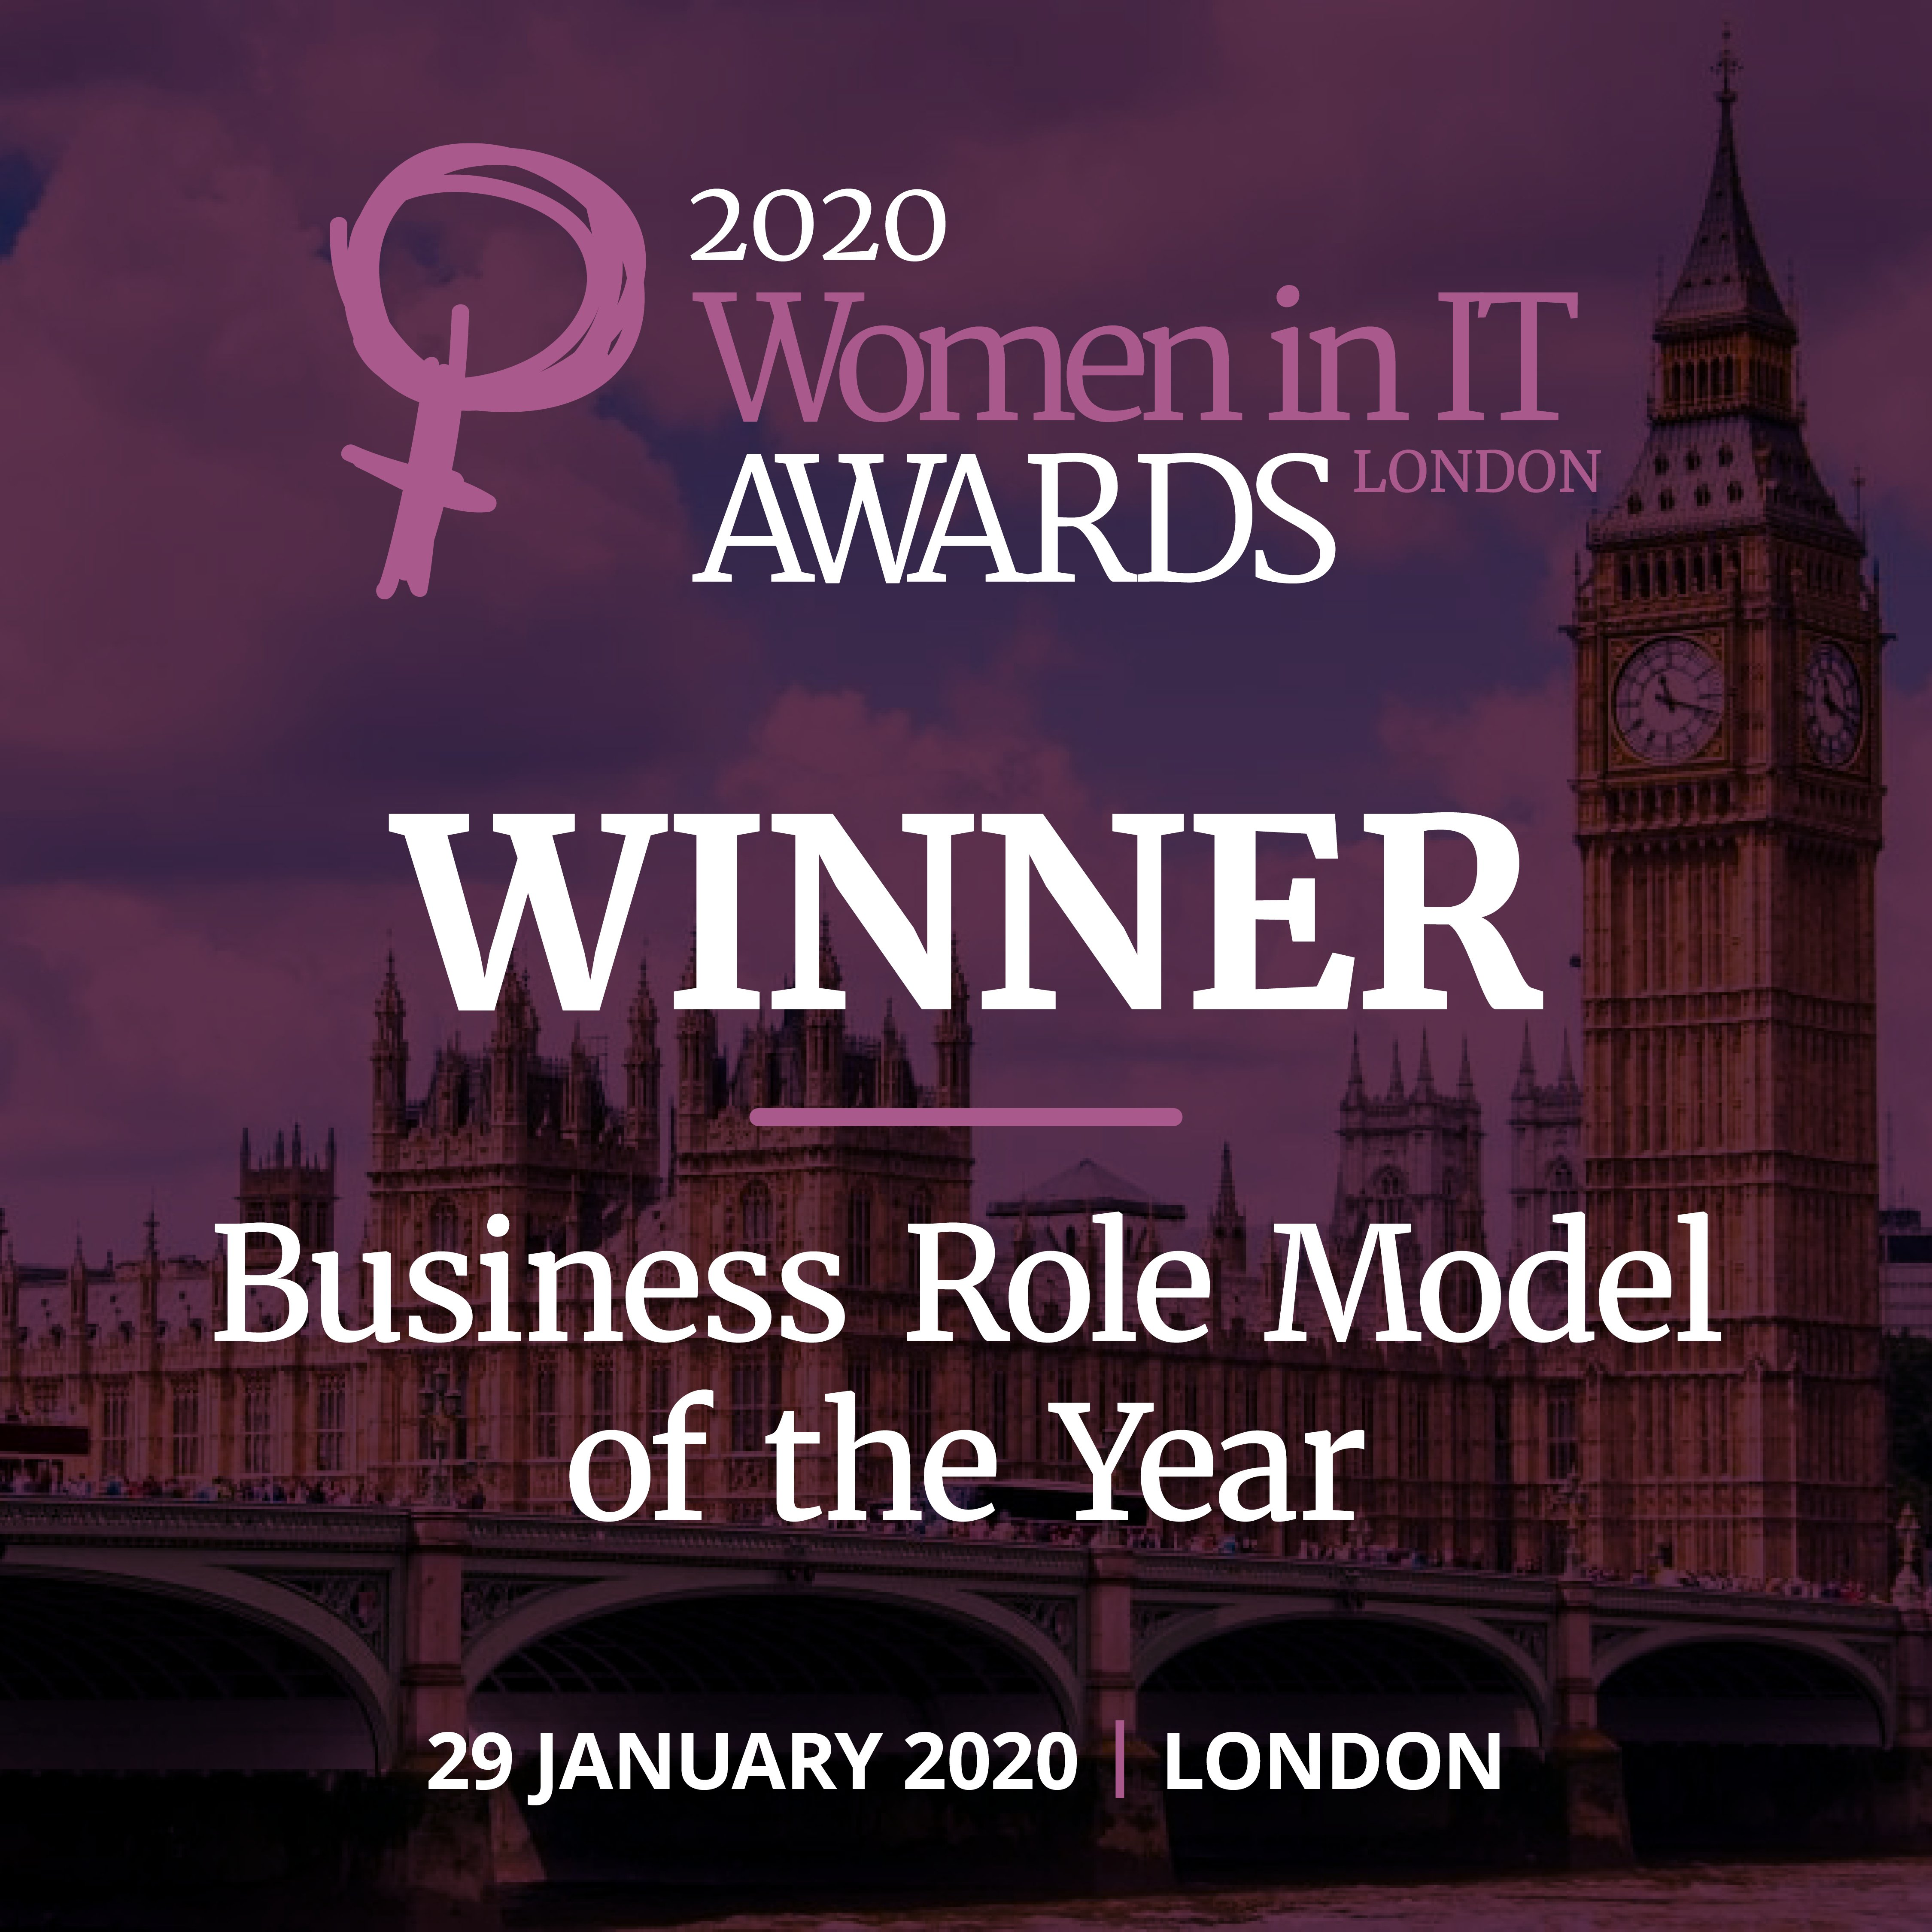 Women in IT Business Role Model of the Year